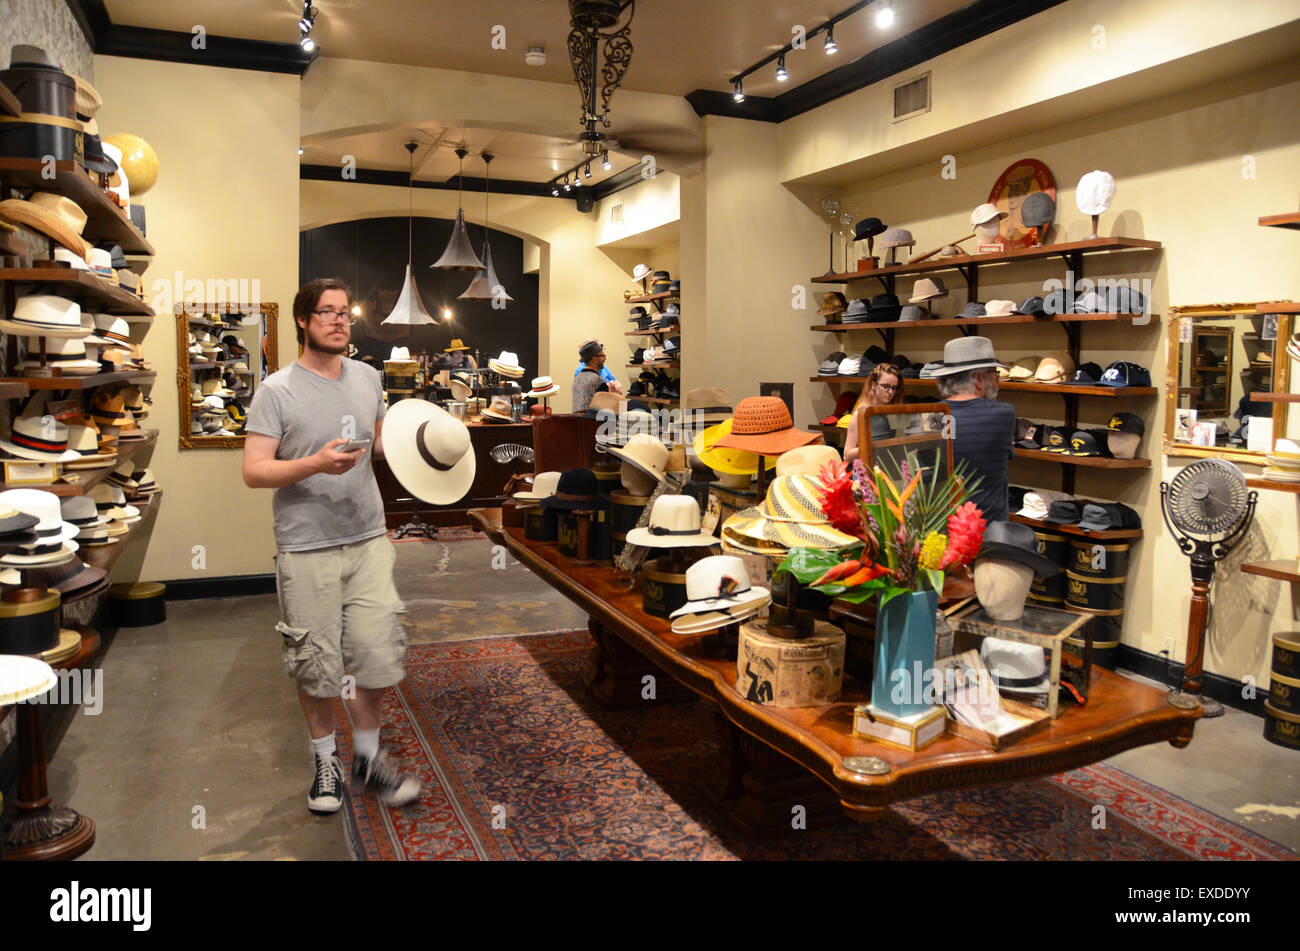 97c0c261afd goorin bros hat shop new orleans Stock Photo  85118879 - Alamy